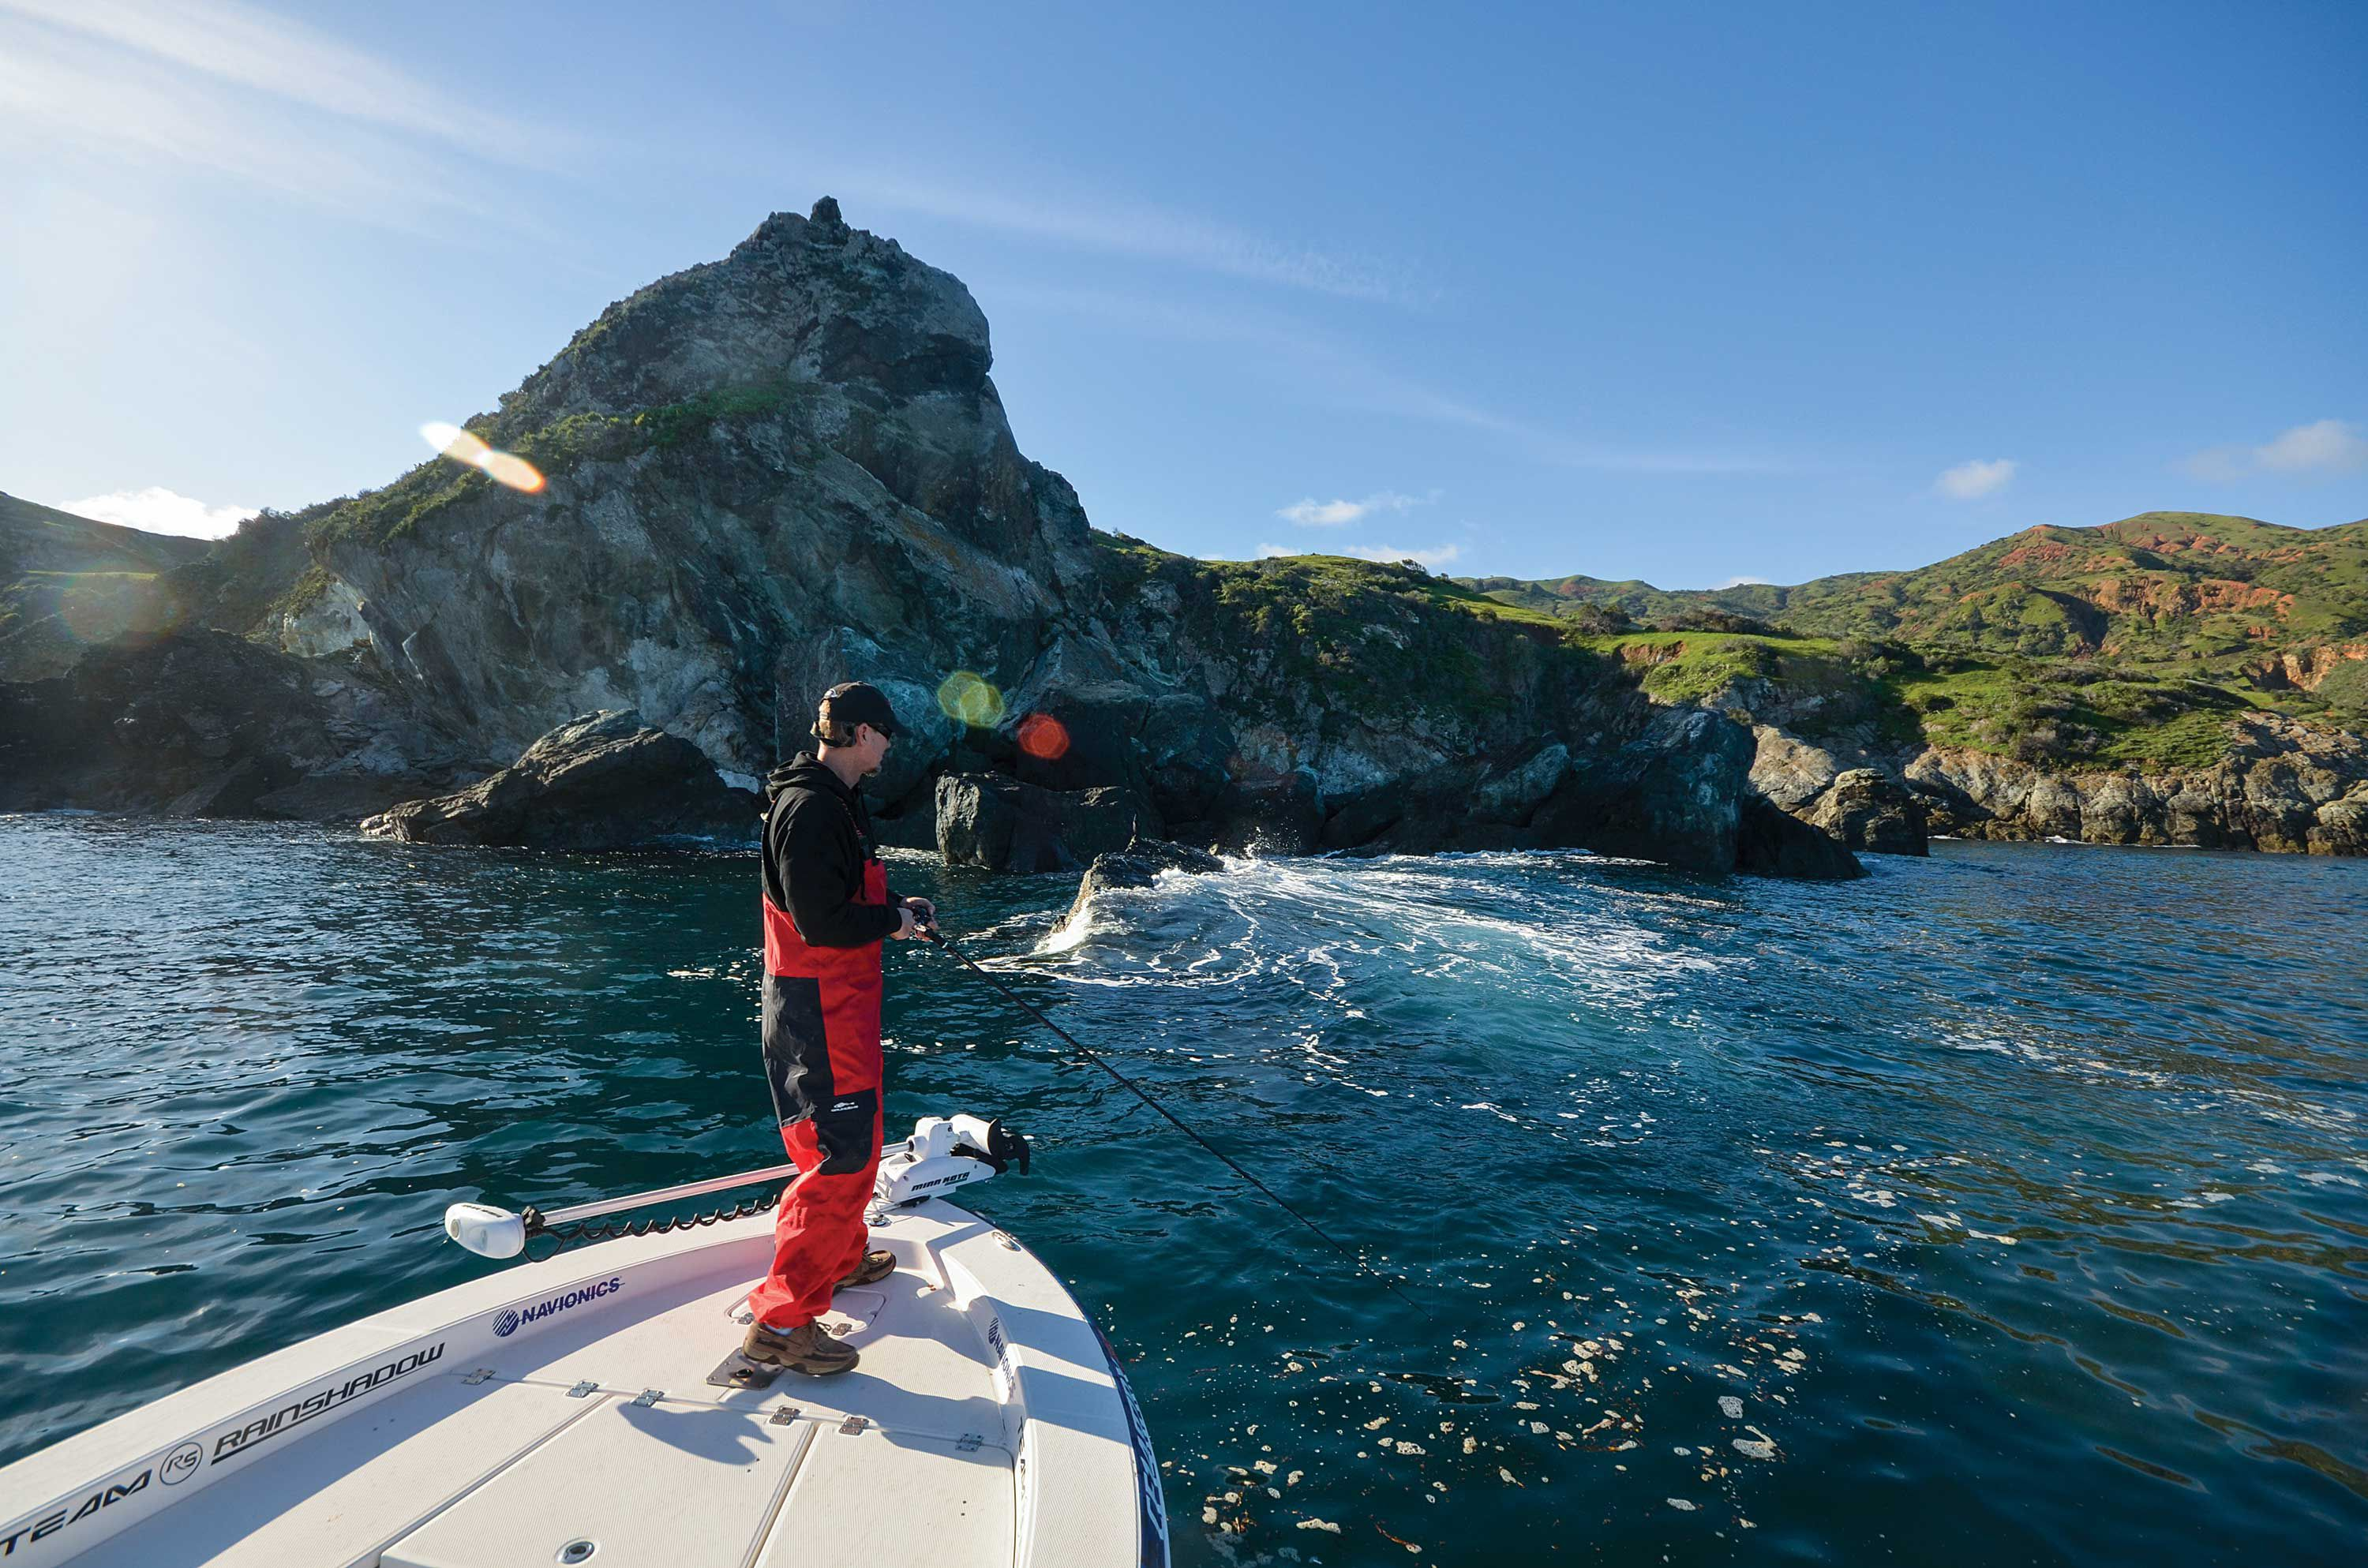 The shallow draft of bay boats and hybrids allows anglers to fish tight to rocky shorelines along the coast, and around offshore islands such as San Clemente in pursuit of structure-loving calico bass.